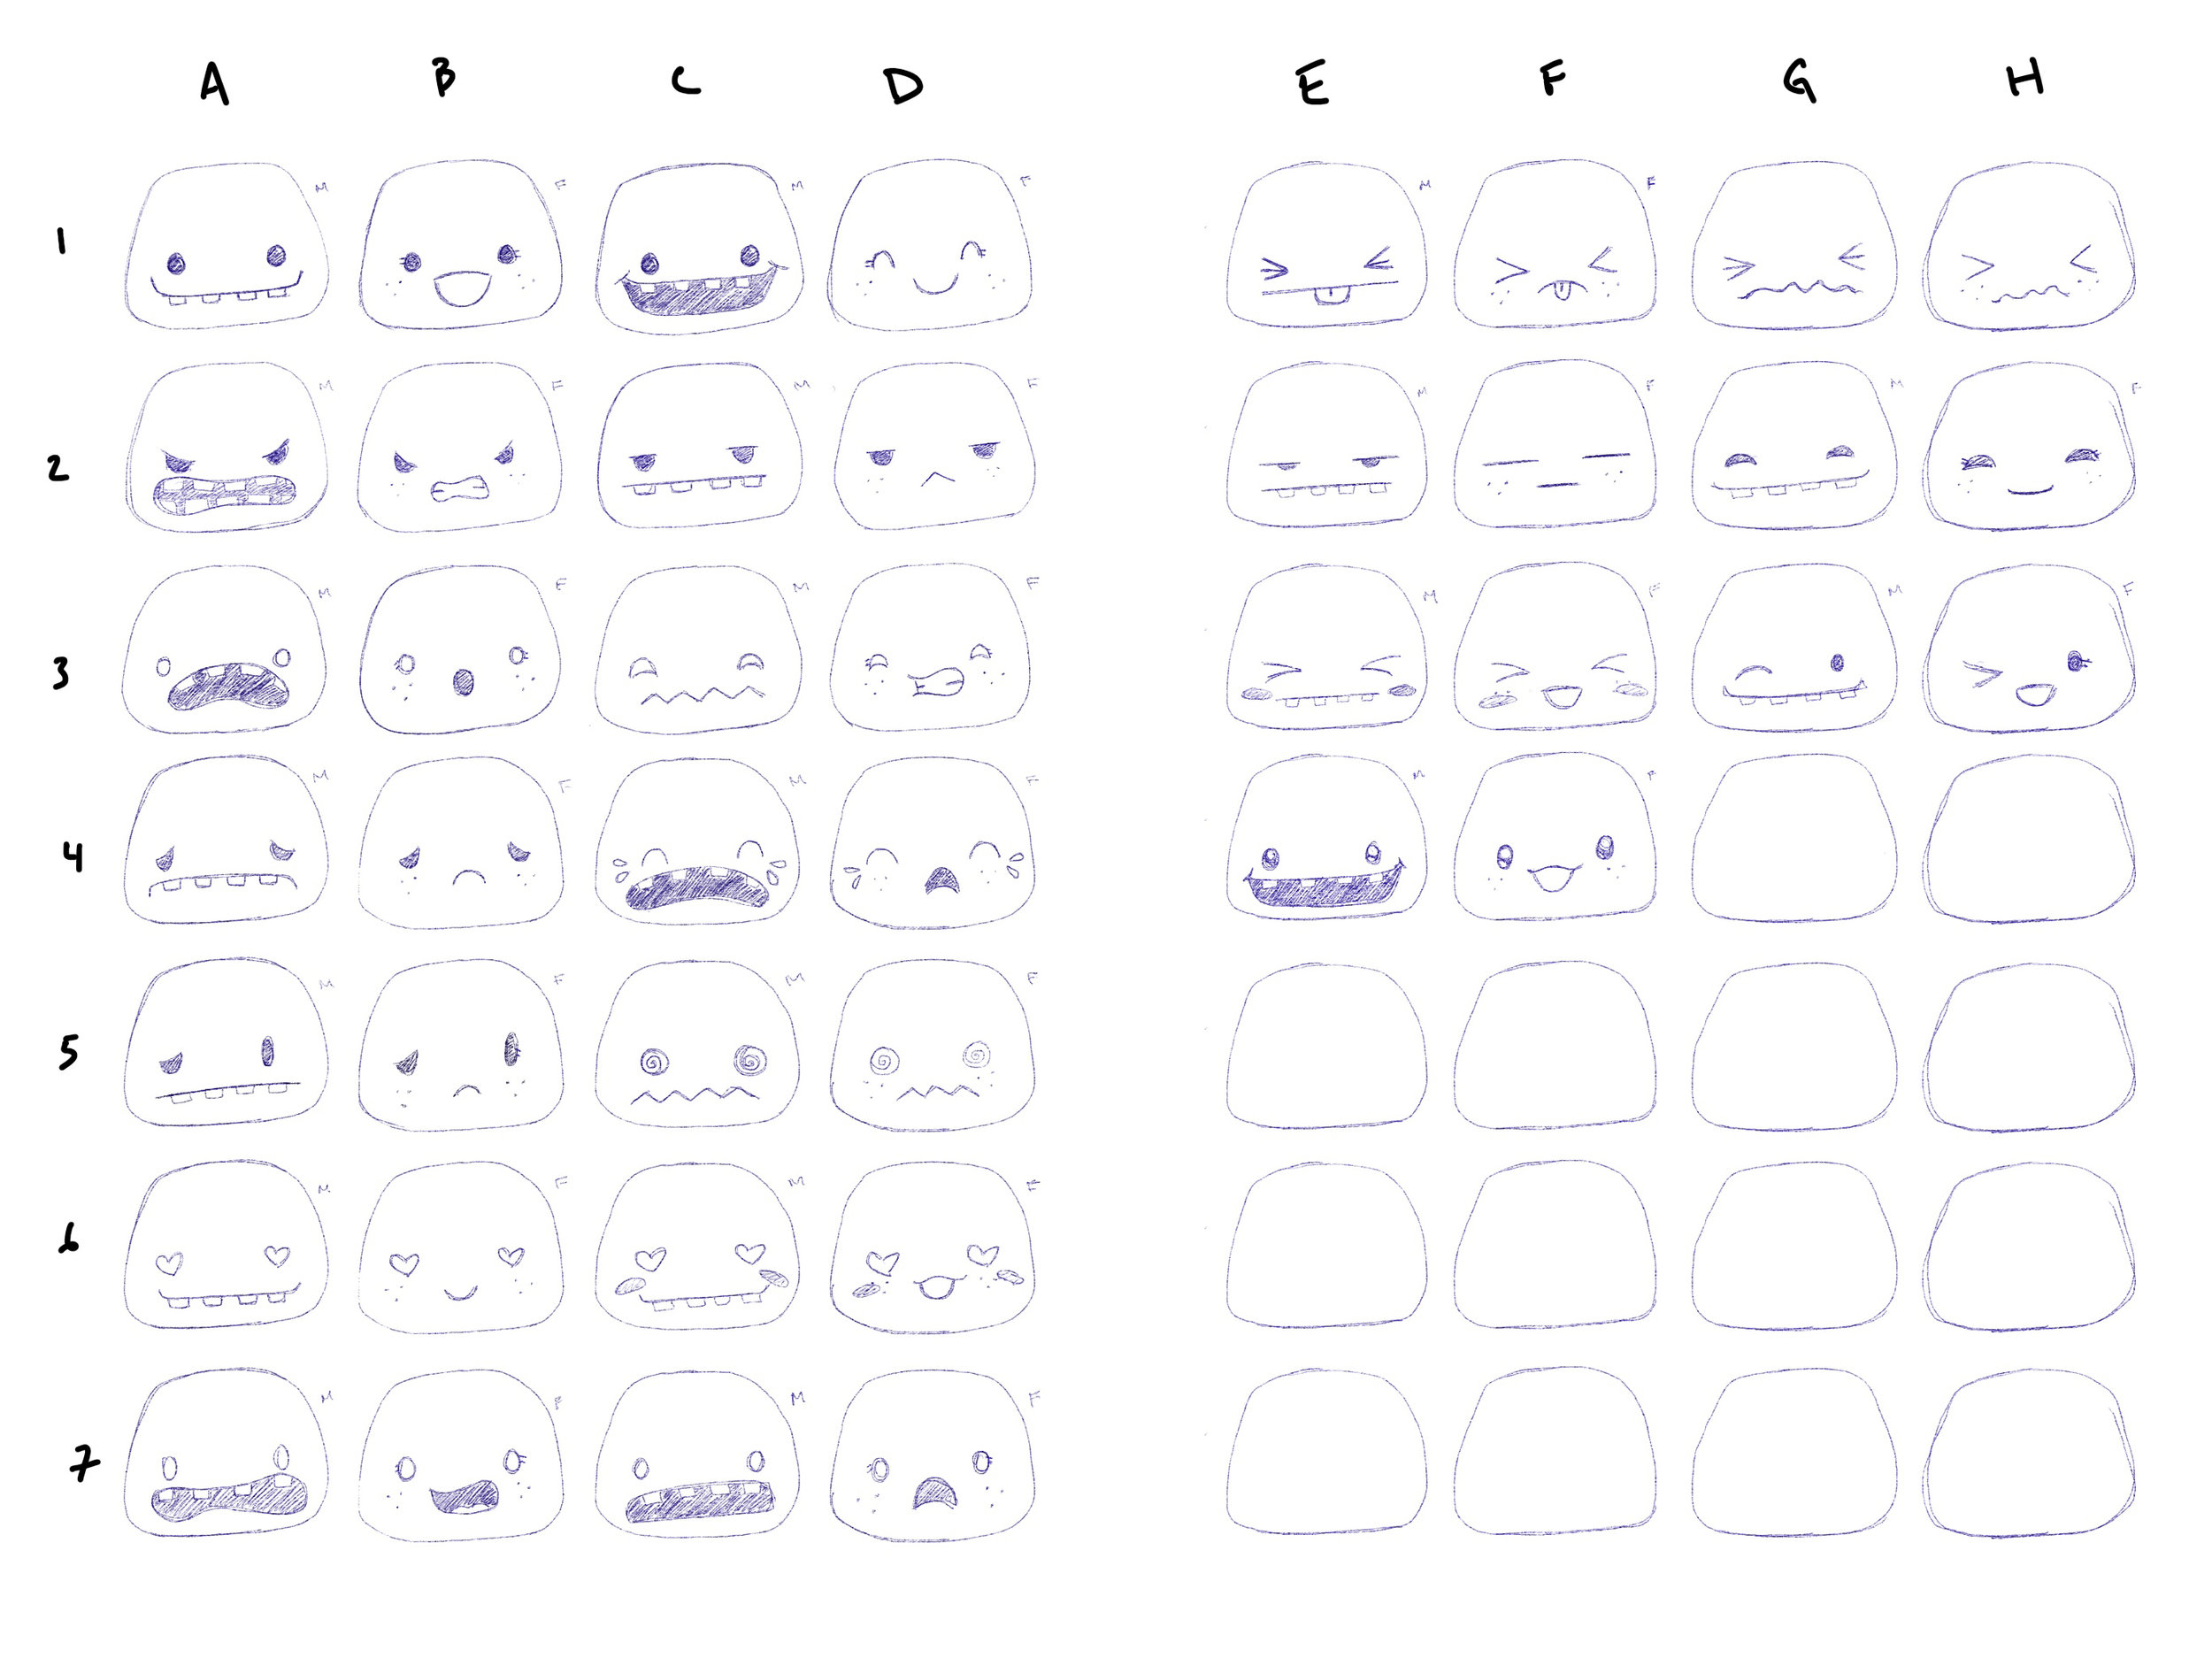 Initial concepts for expressions and mouth shapes